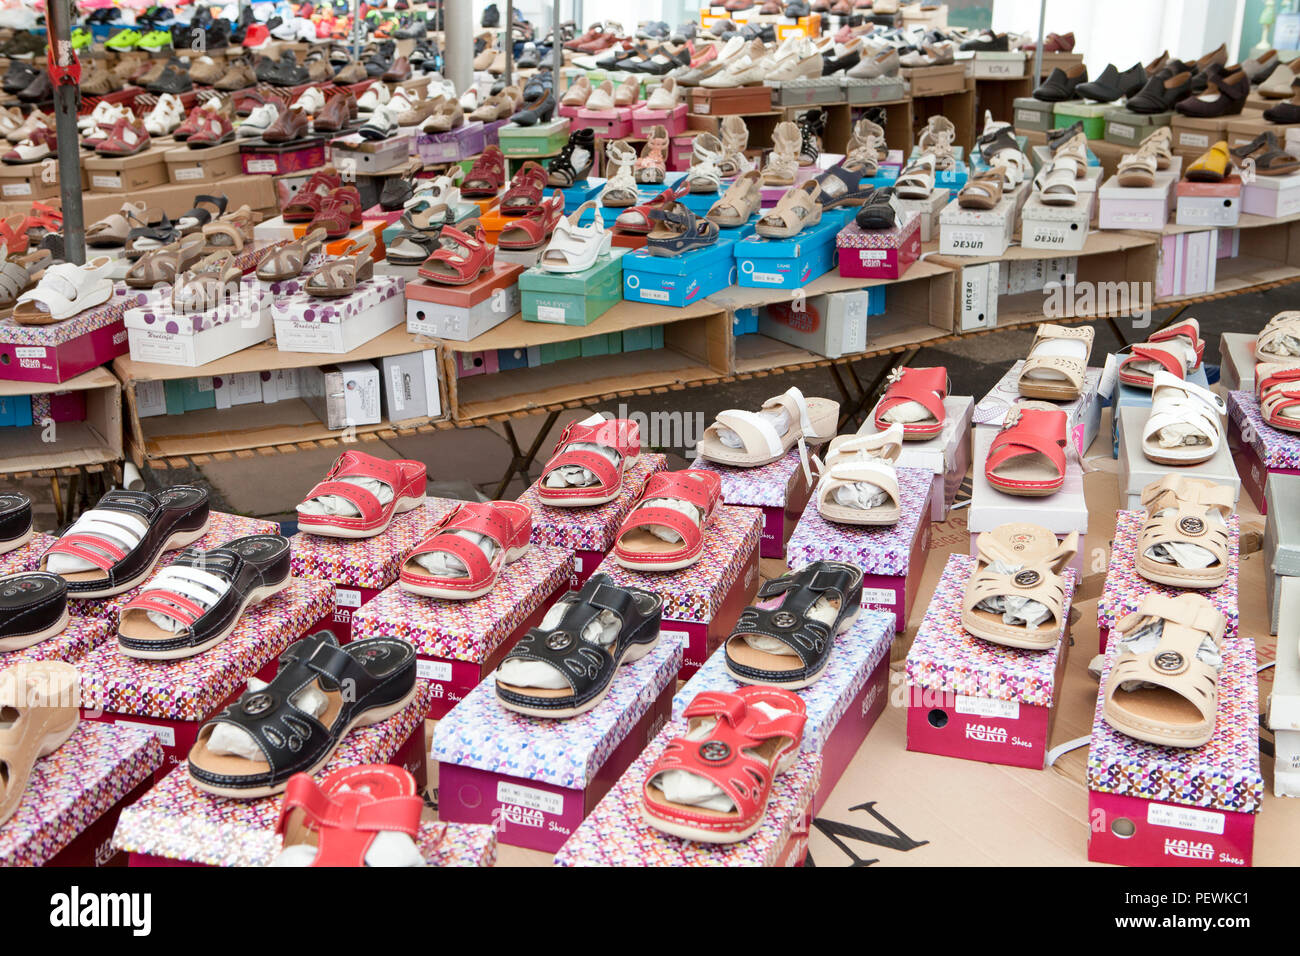 Market stand selling shoes, Germany, Europe - Stock Image